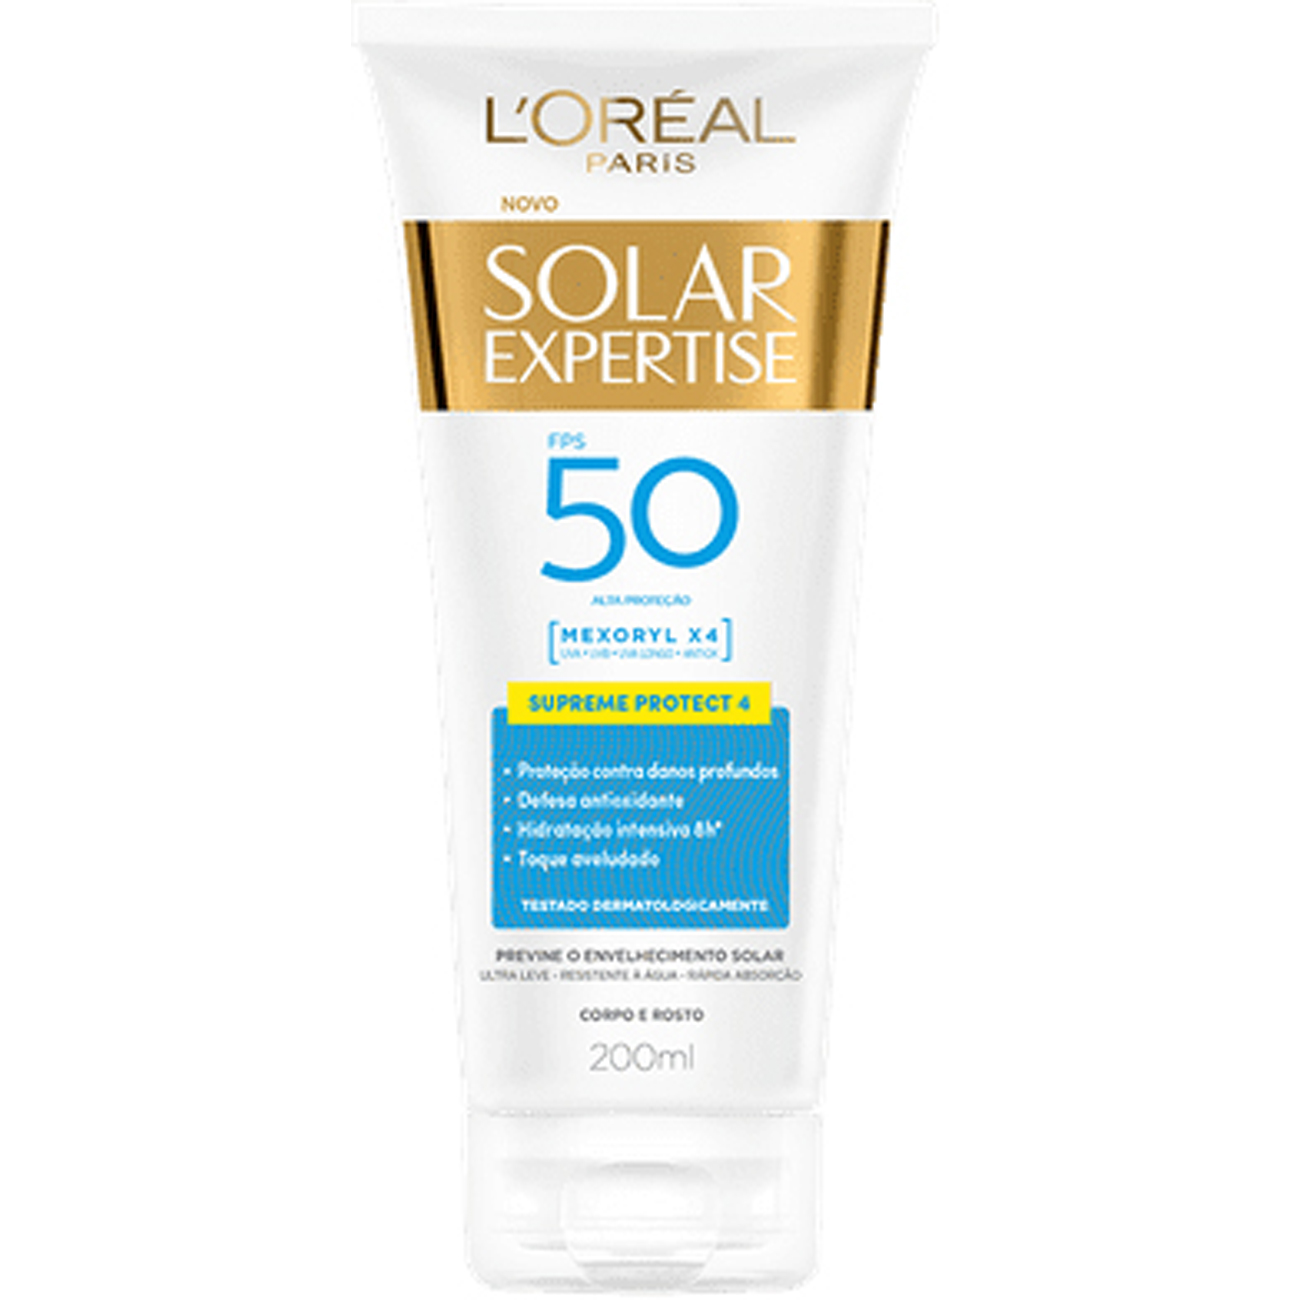 Protetor Solar LOreal Paris Solar Expertise Supreme Protect 4 FPS 50 200ml